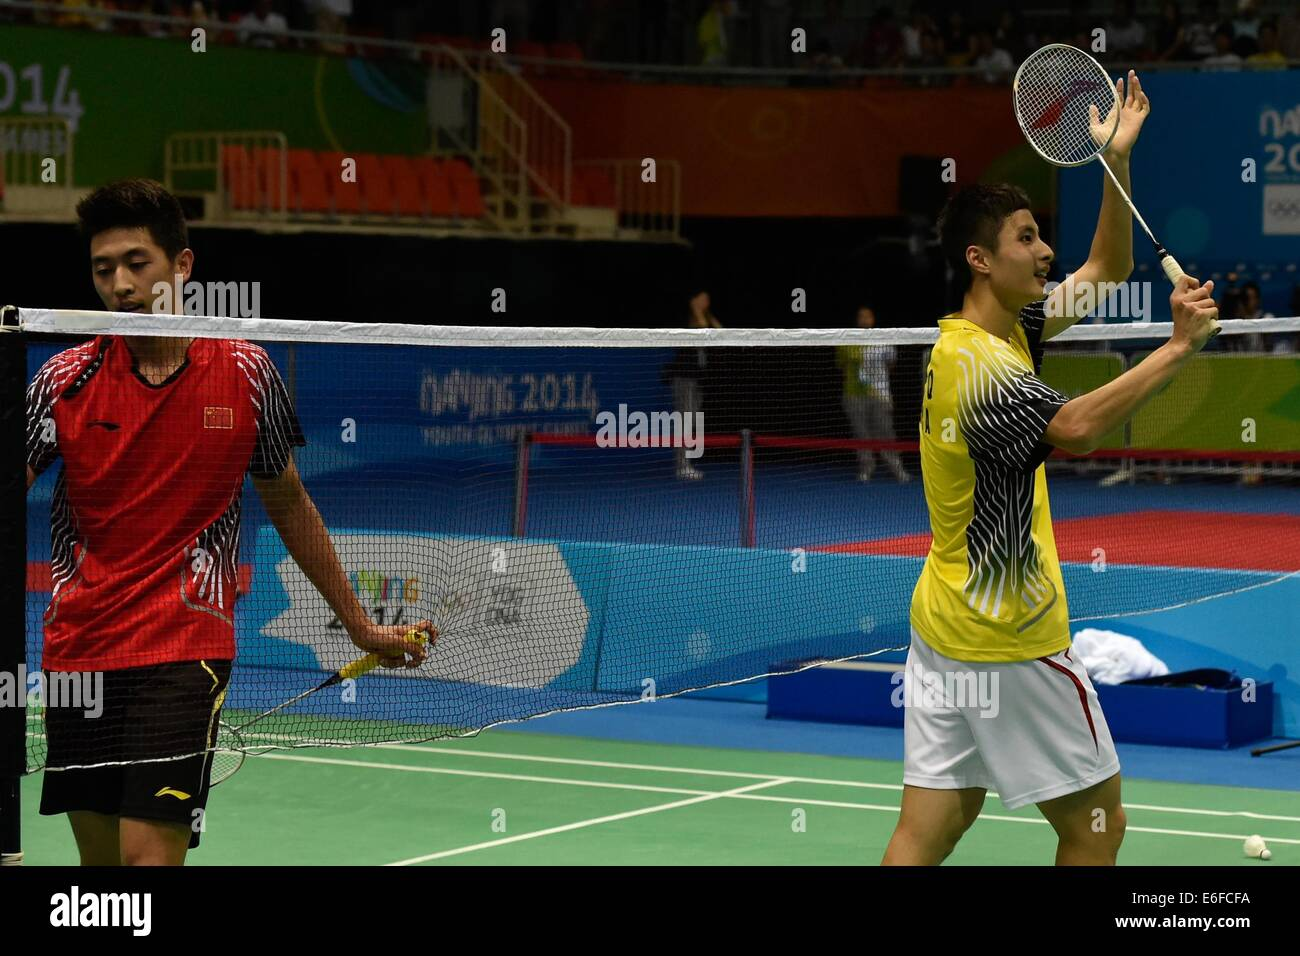 Nanjing China s Jiangsu Province 22nd Aug 2014 Shi Yuqi R of